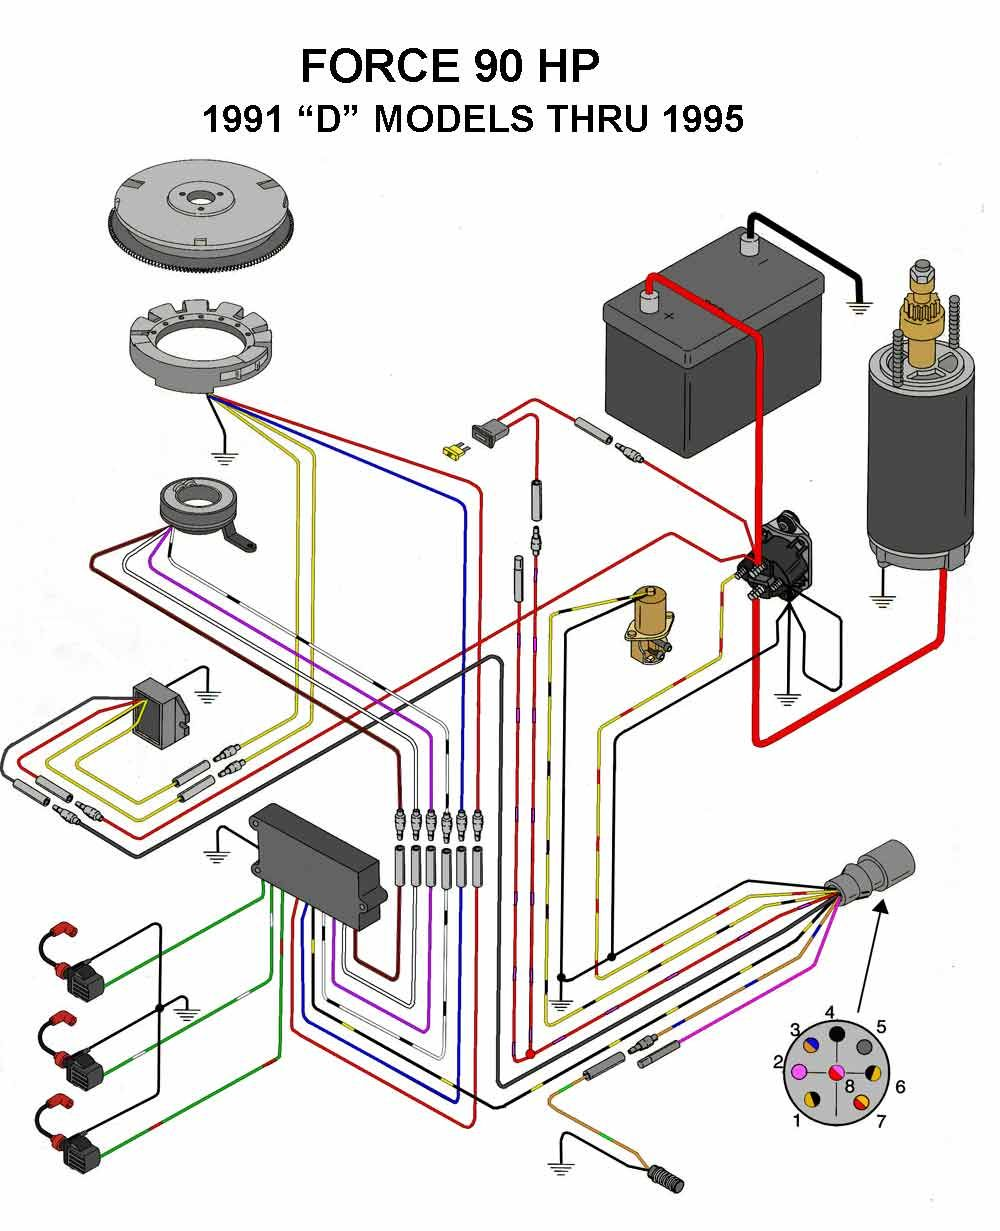 Trolling Motor Wiring Harness Diagram Will Be A Thing Minn Kota Plug Engine Ignition System Schematic Systems Connection